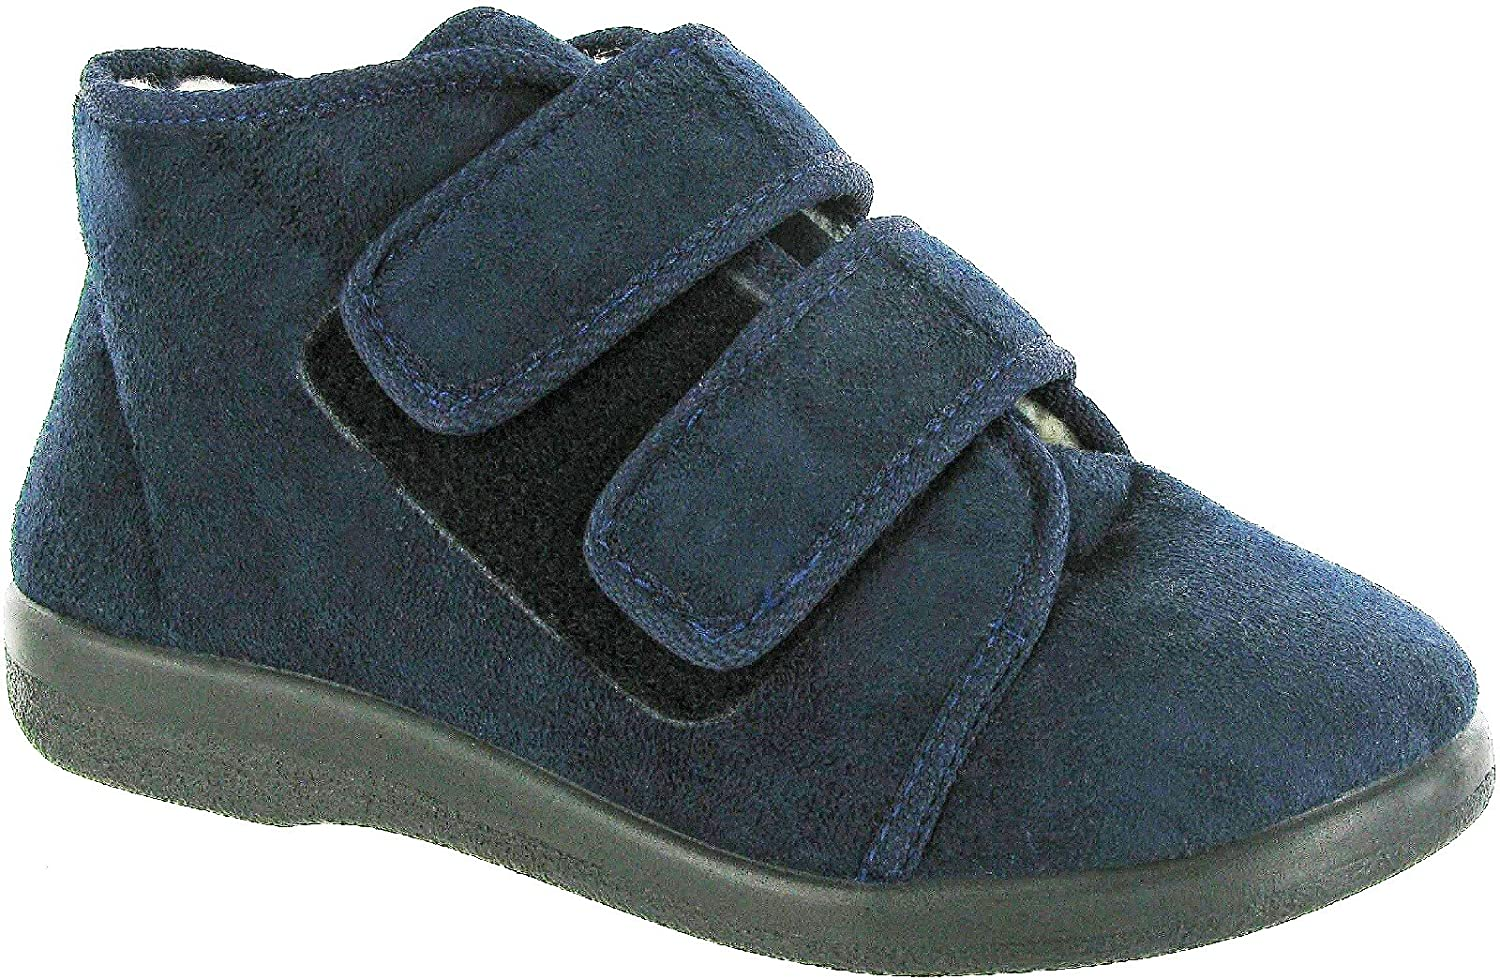 GBS Med TORBAY Unisex Medical Touch Fasten Slippers Navy